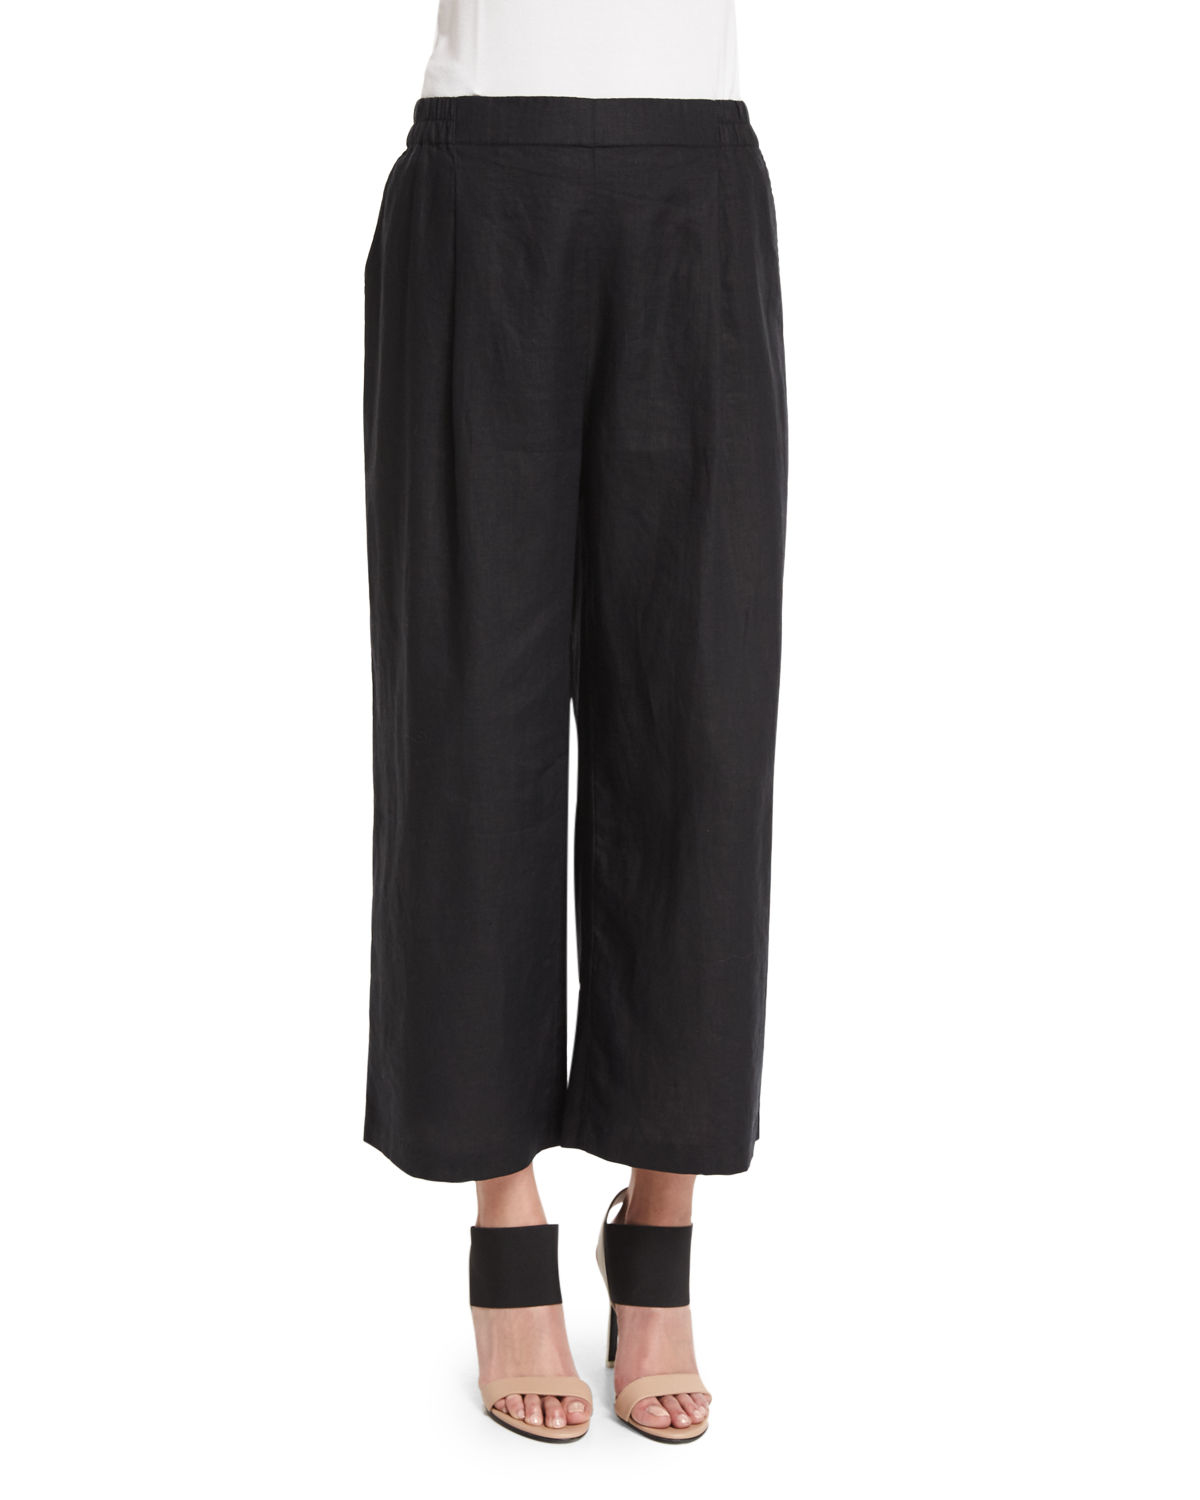 Eileen fisher Organic Linen Wide-leg Cropped Pants in Black | Lyst